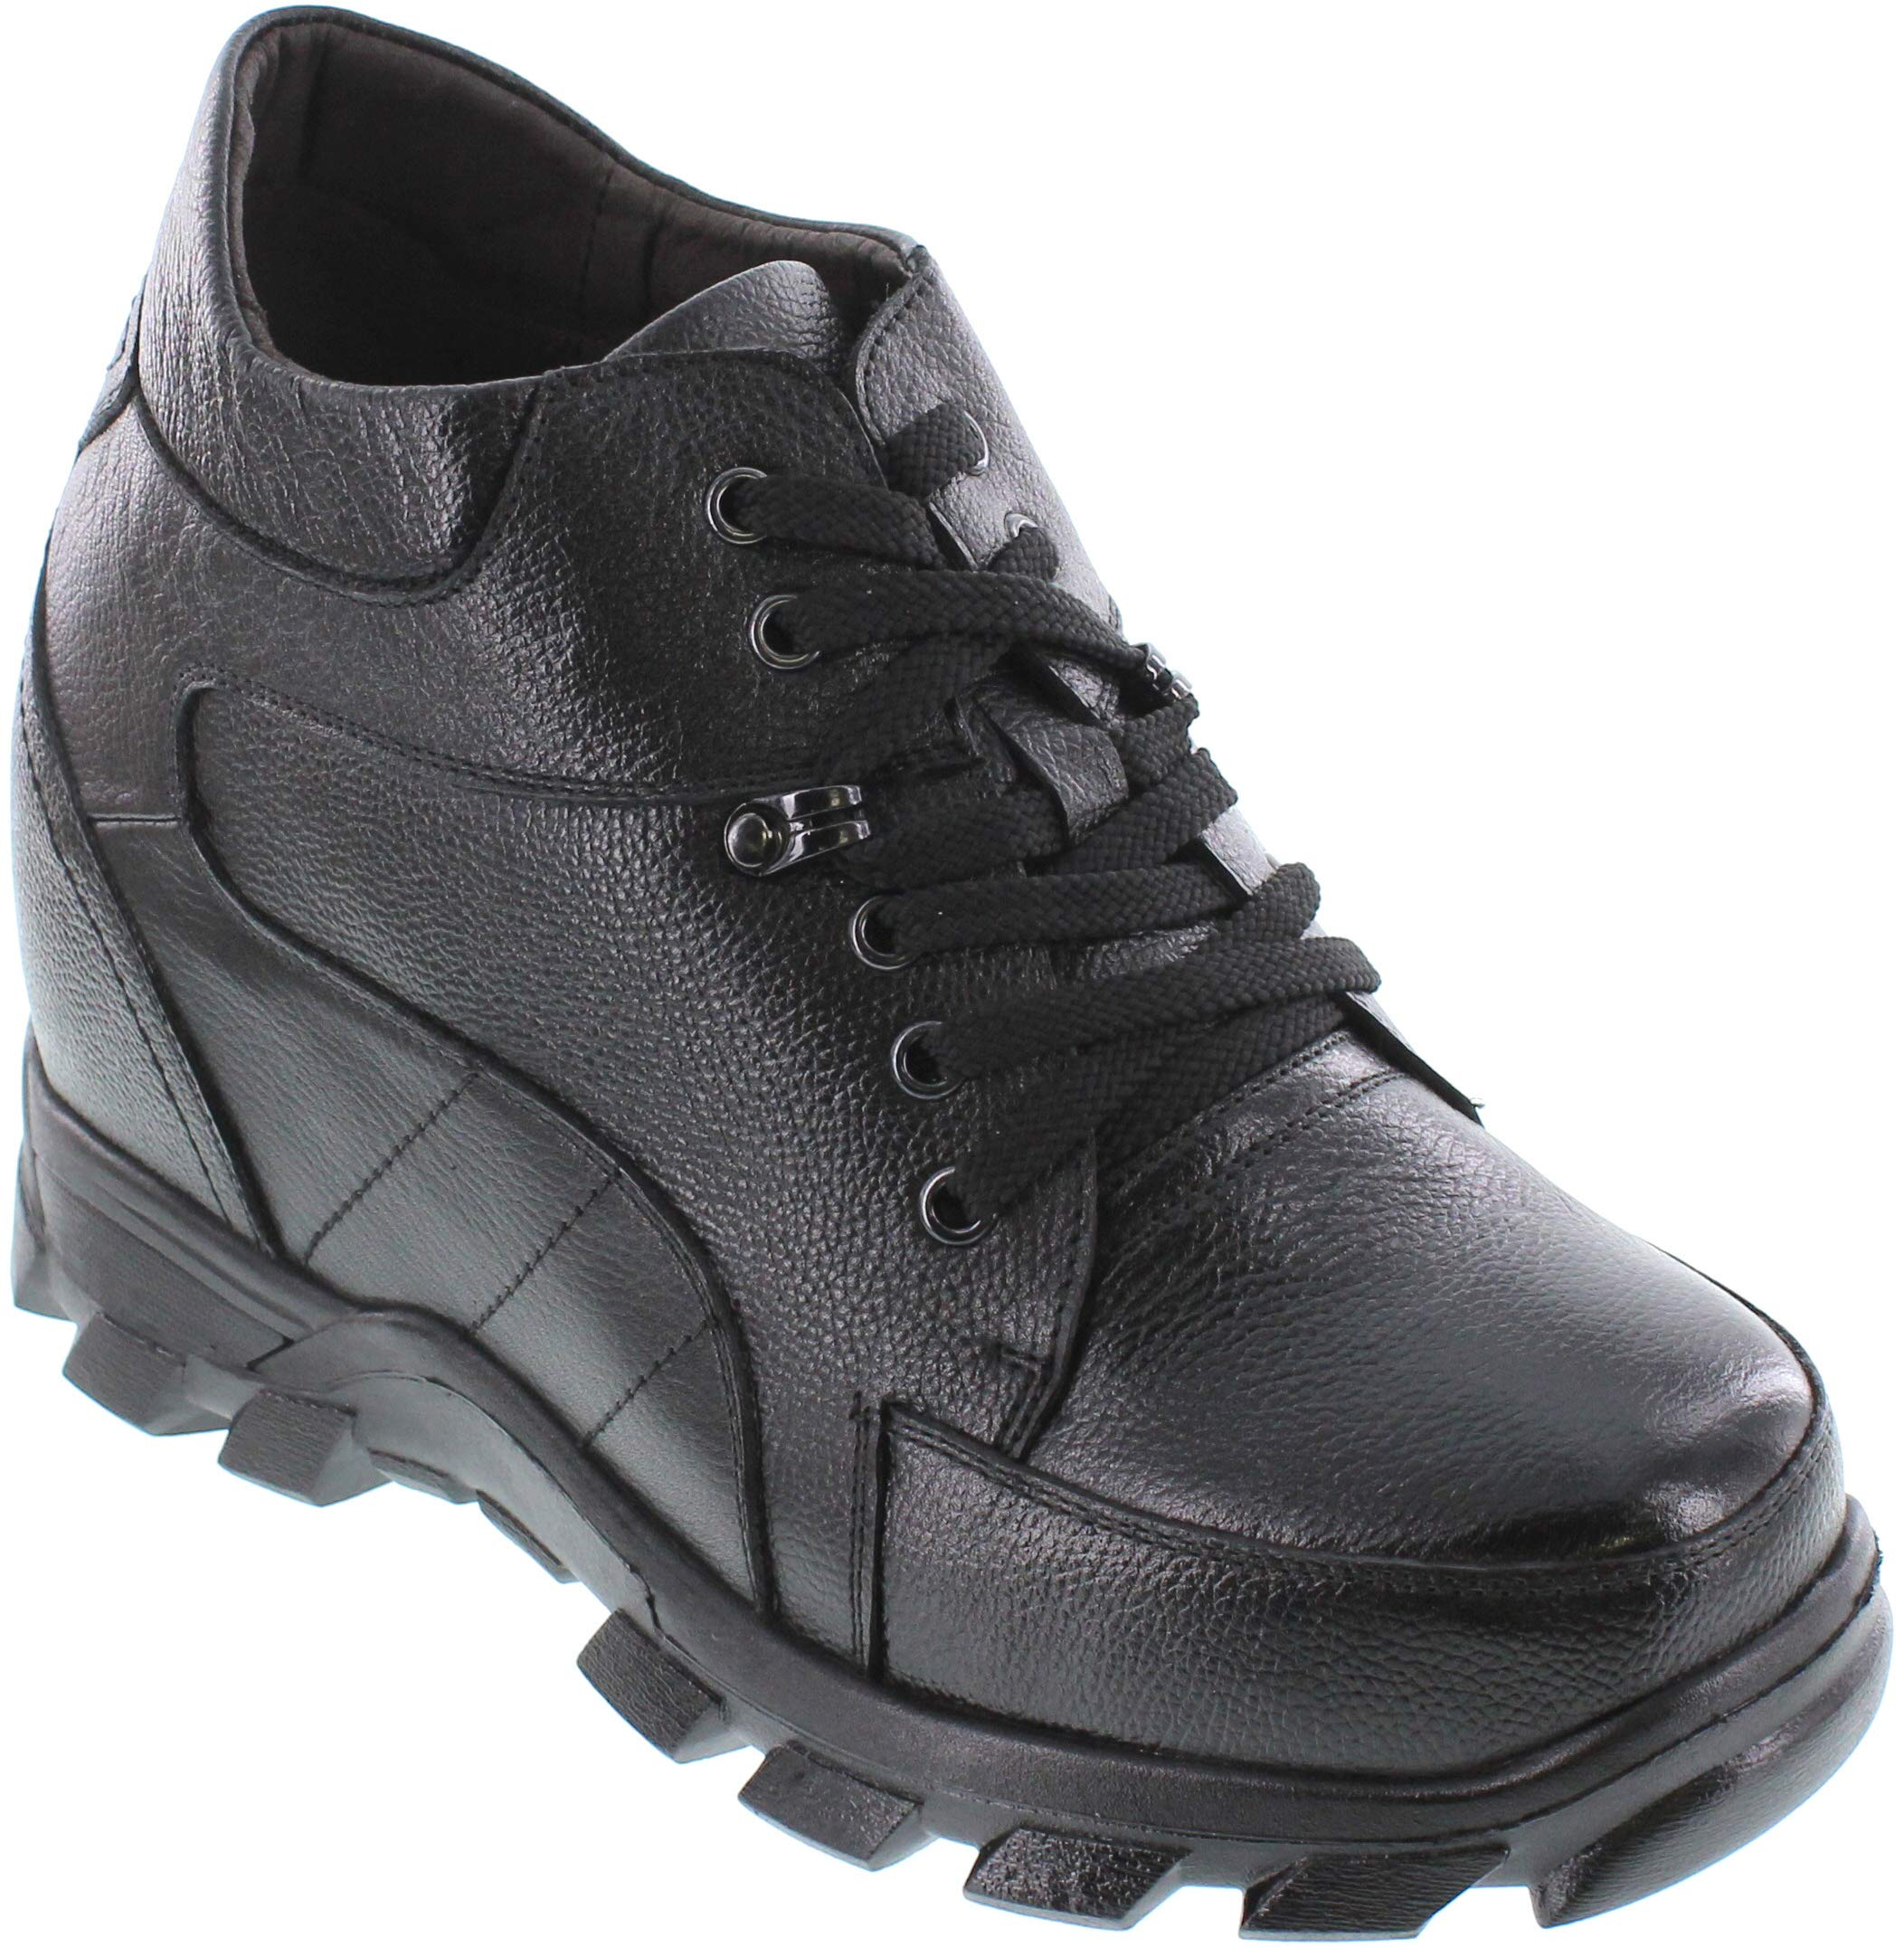 Calden - K107216-5.2 Inches Taller - Height Increasing Elevator Shoes-Black Lace up Boot (10 D(M) US)